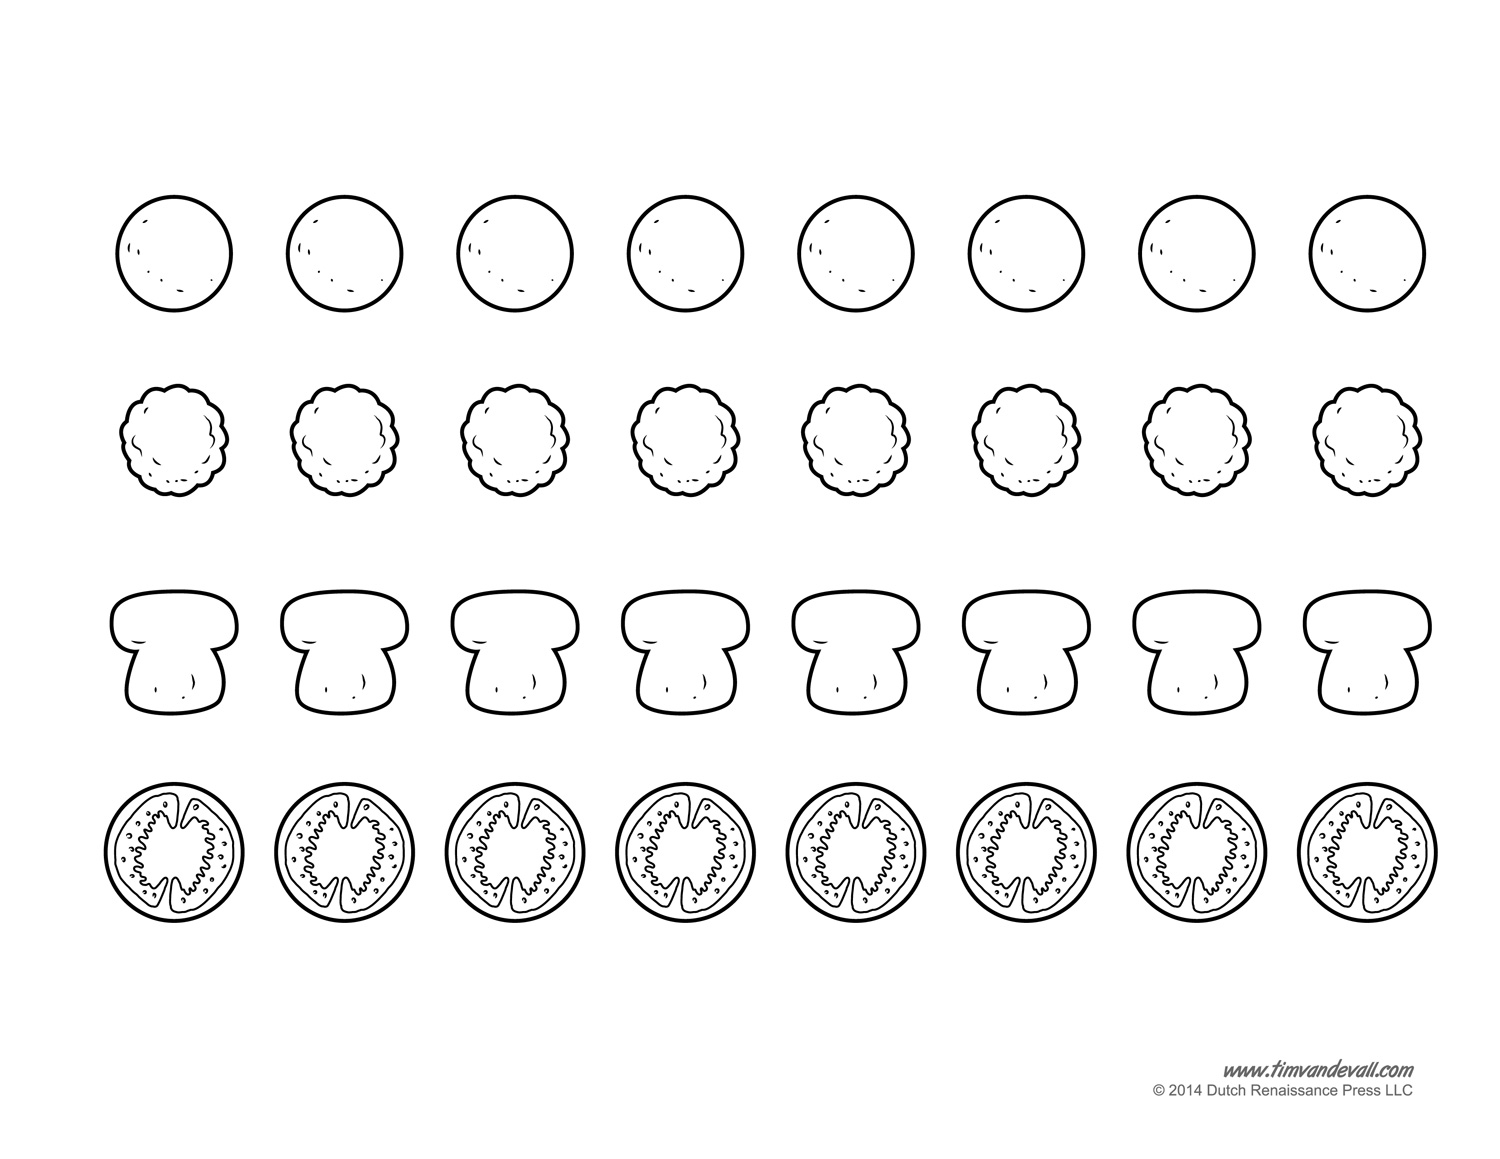 graphic about Printable Pizza Toppings named Blank Pizza Template Printable Pizza Craft for Children